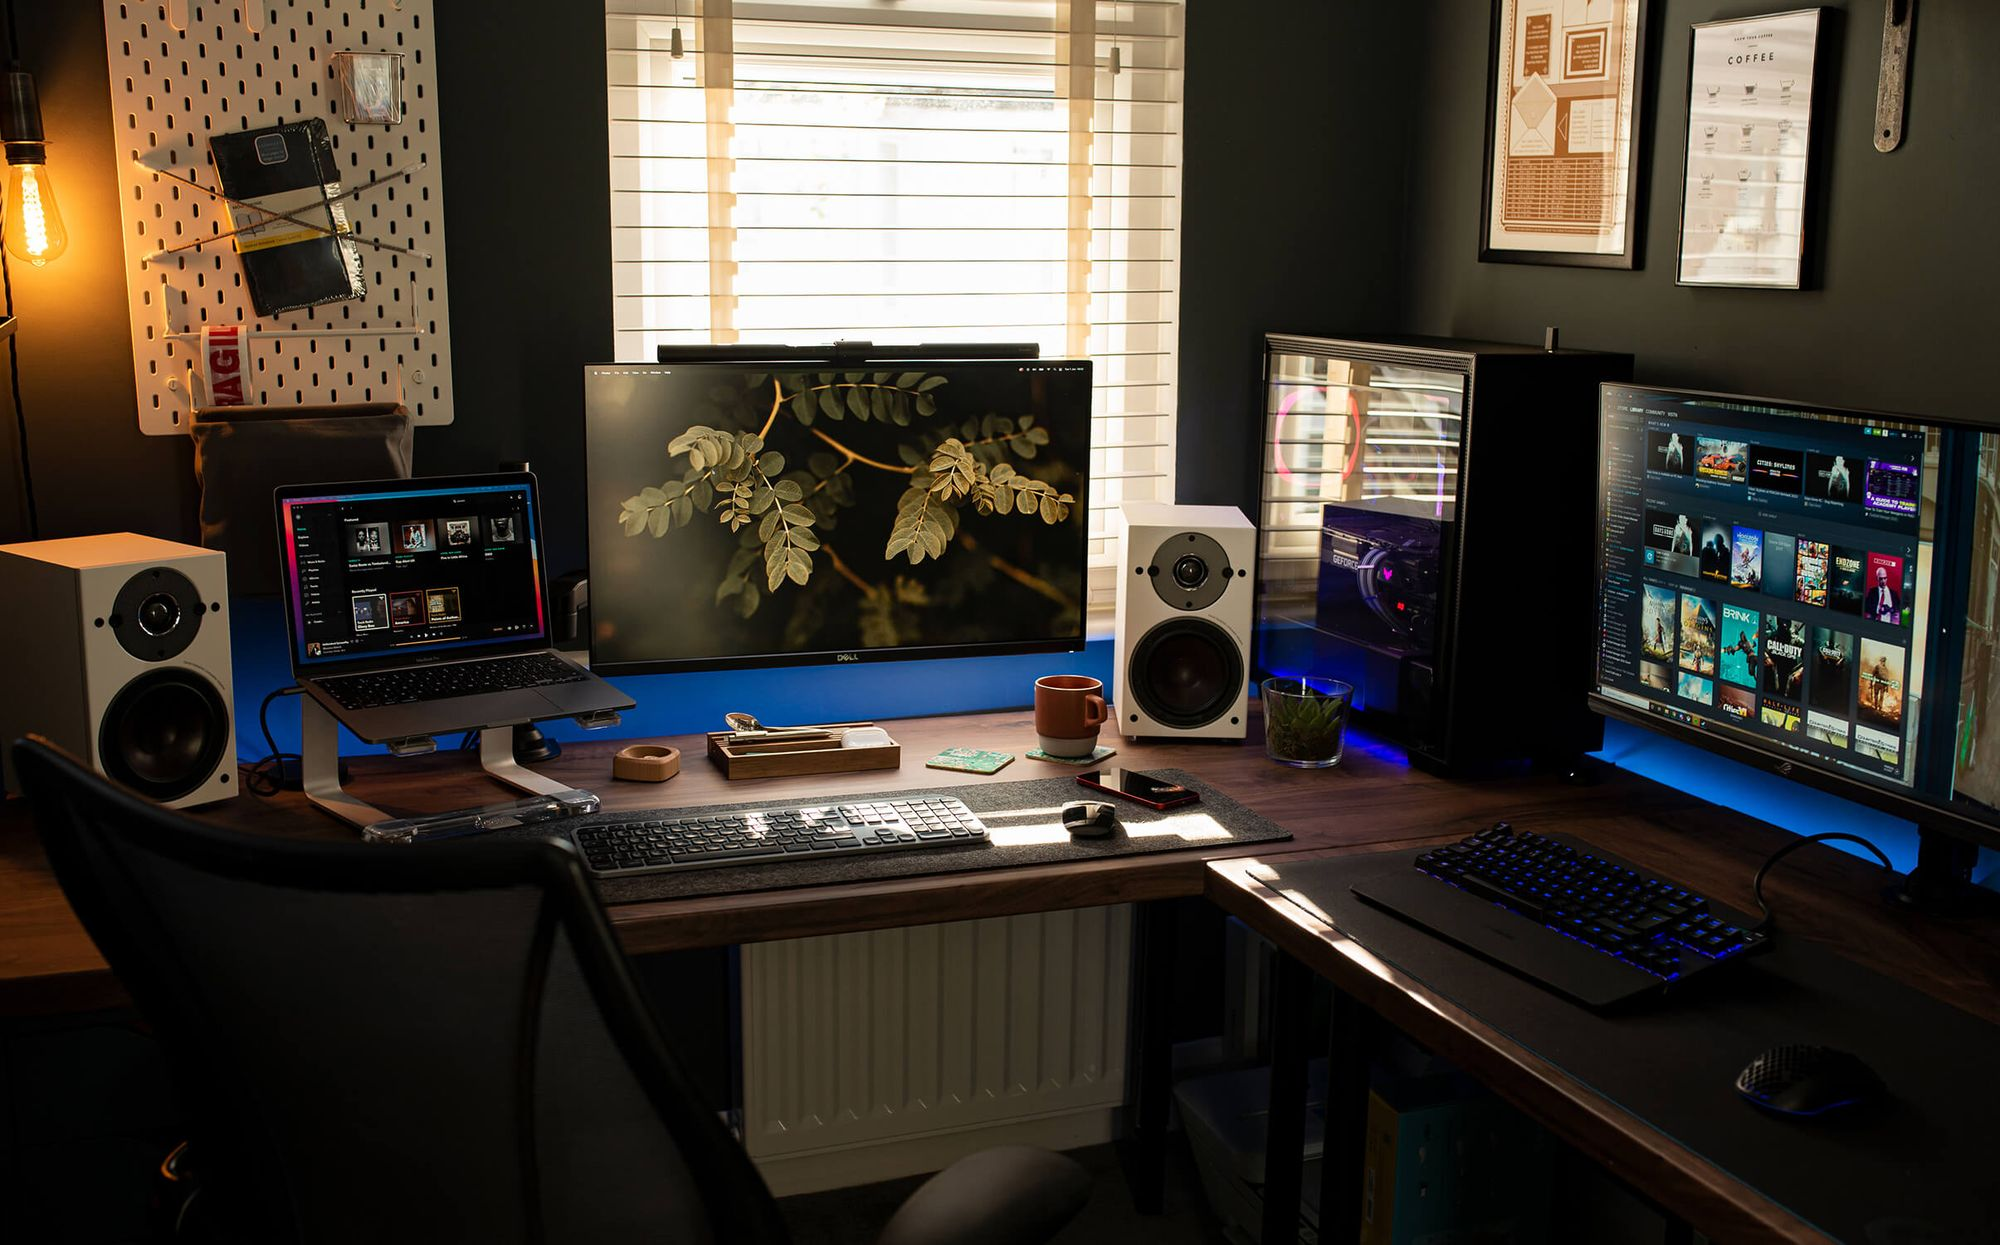 """There is a lot of natural light coming through the window. """"I enjoy being able to peer over the top of my monitor to the outside world"""""""